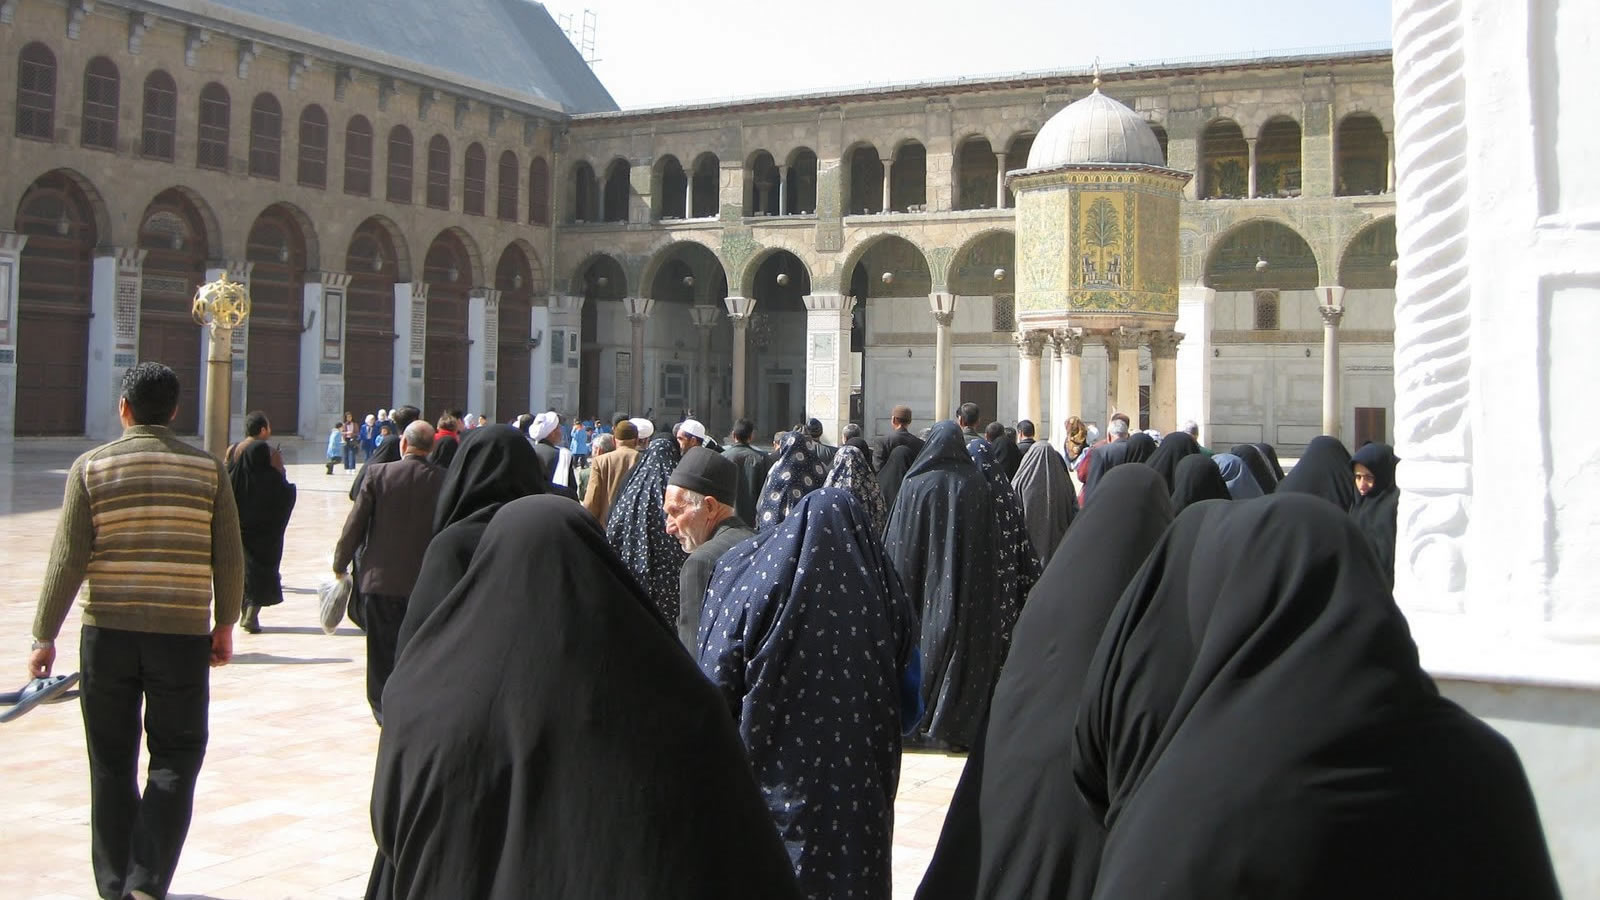 Iranian Pilgrims in the Courtyard of the Umayyas Mosque in Syria